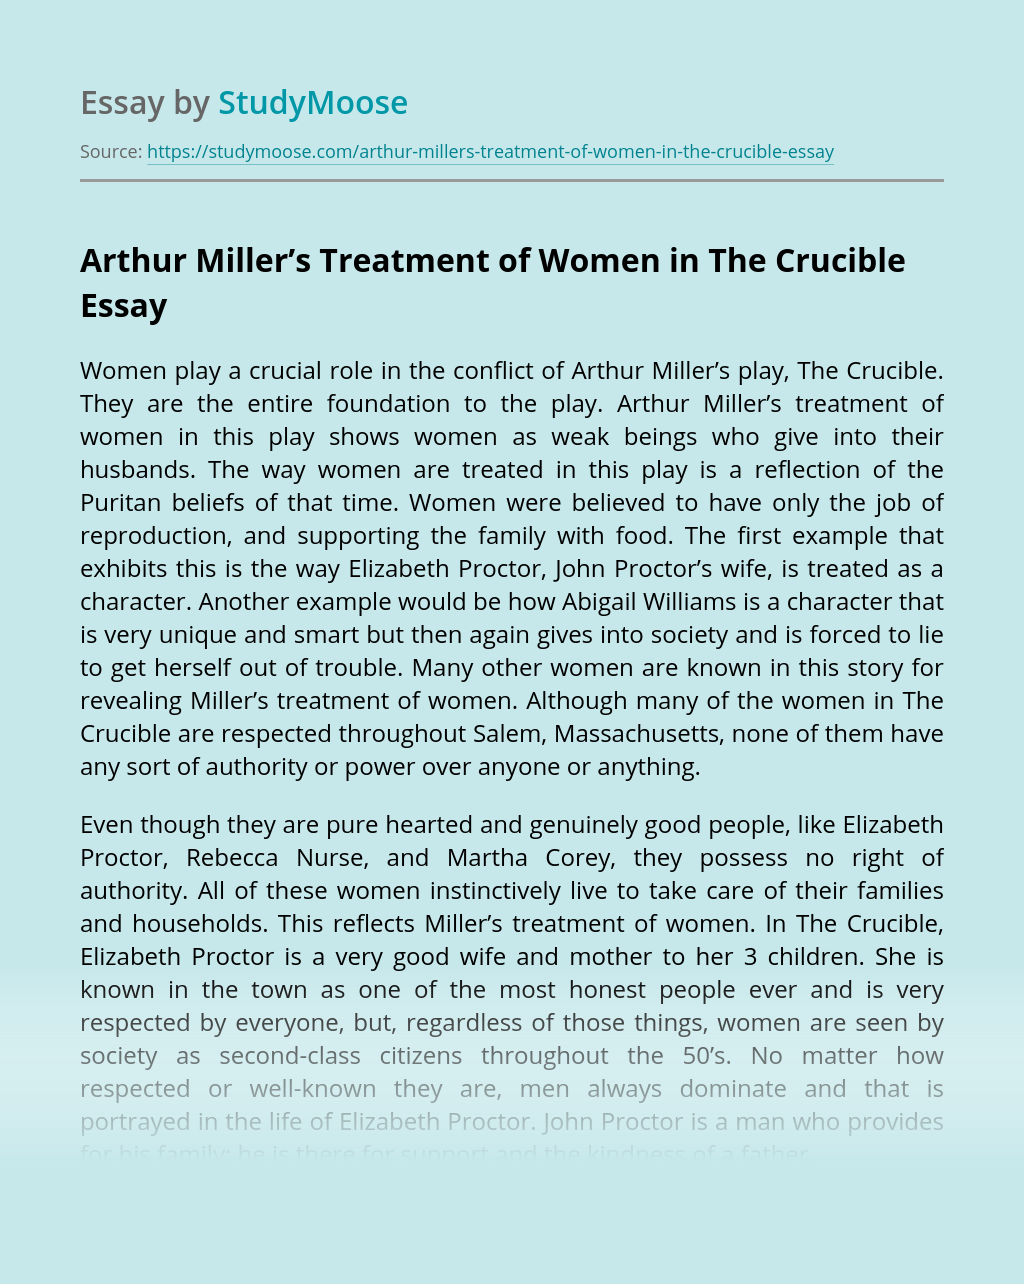 Arthur Miller's Treatment of Women in The Crucible